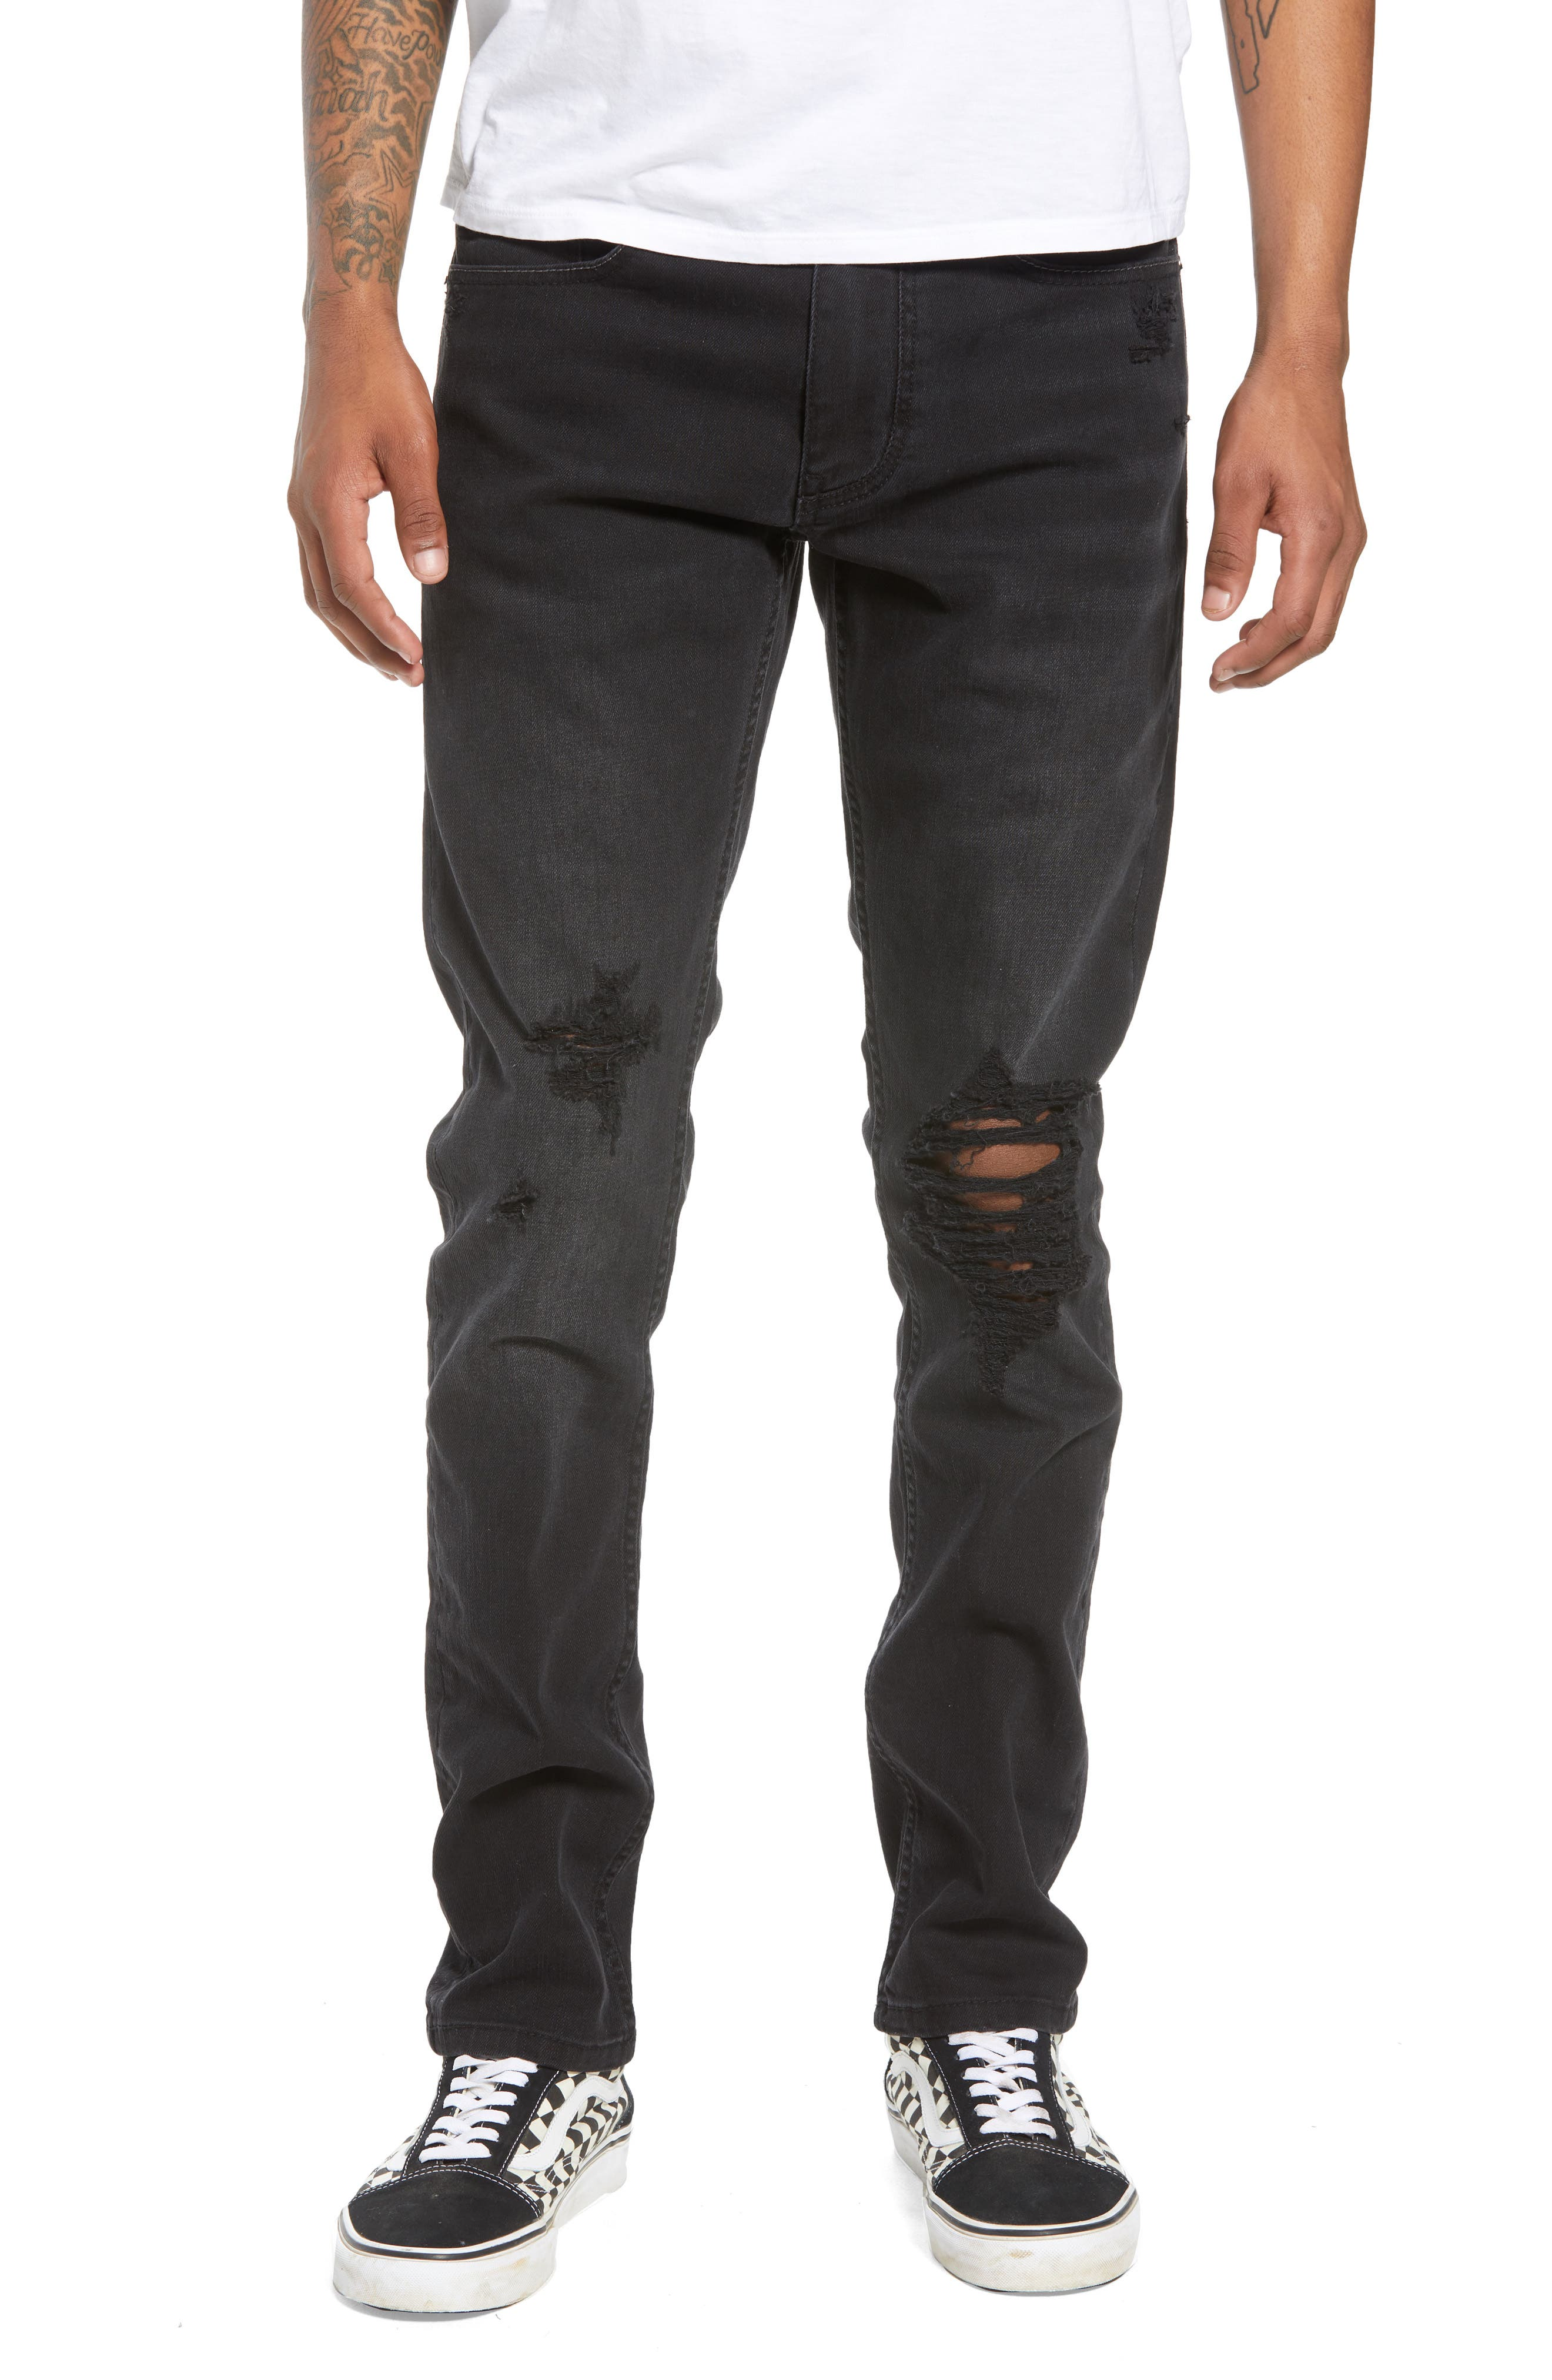 Wooster Slim Fit Jeans,                             Main thumbnail 1, color,                             WILLING BOUNDARY